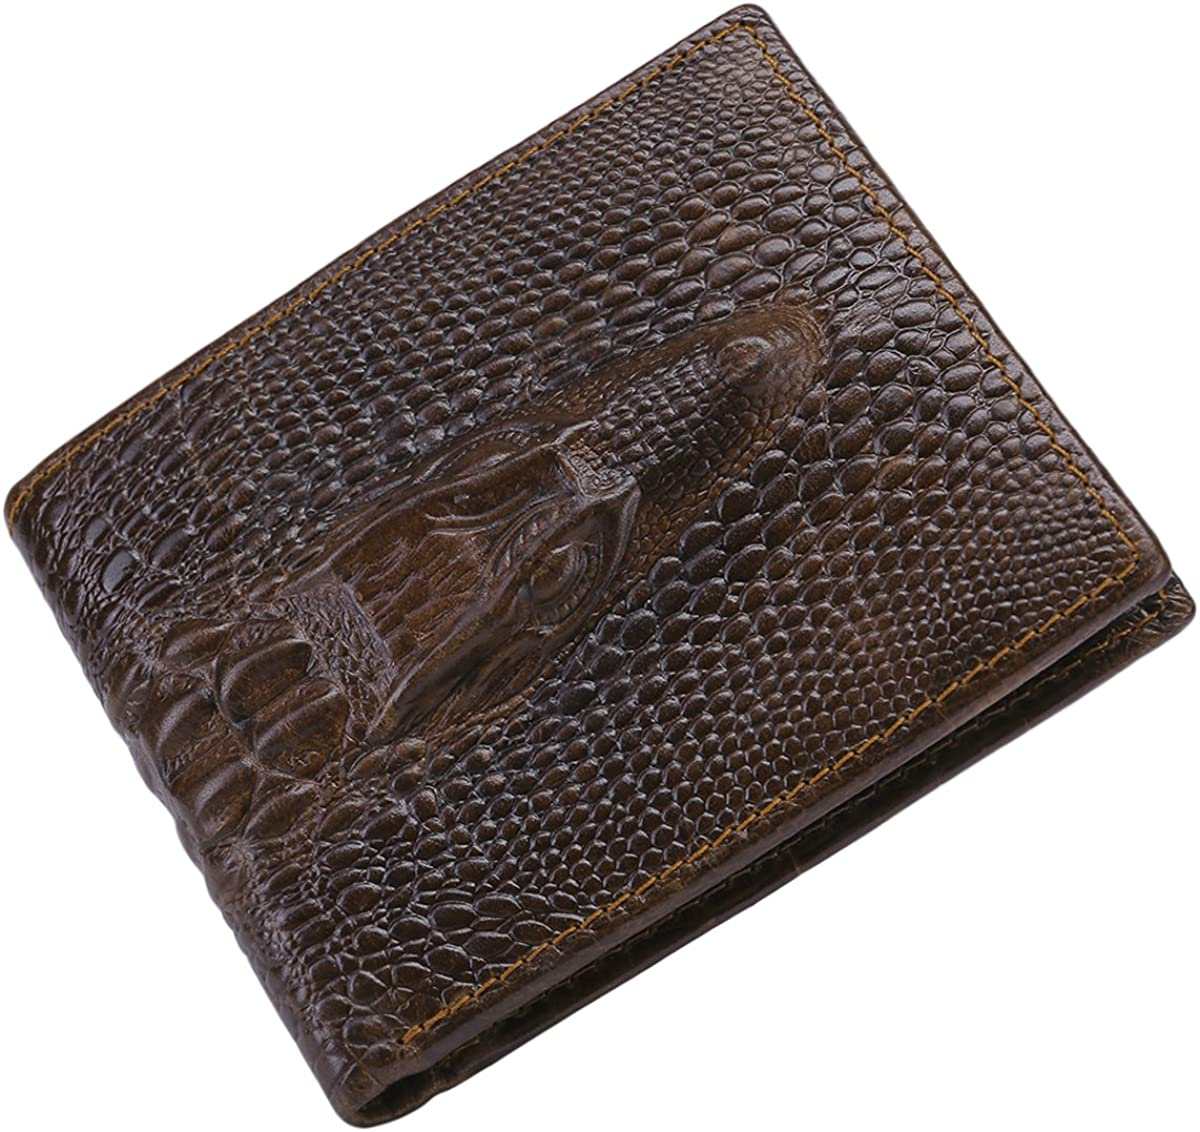 Itslife Leather Wallets for Men RFID Blocking, Mens Bifold Wallet with Removable Card Holder 2 ID Windows, Gift Wallet